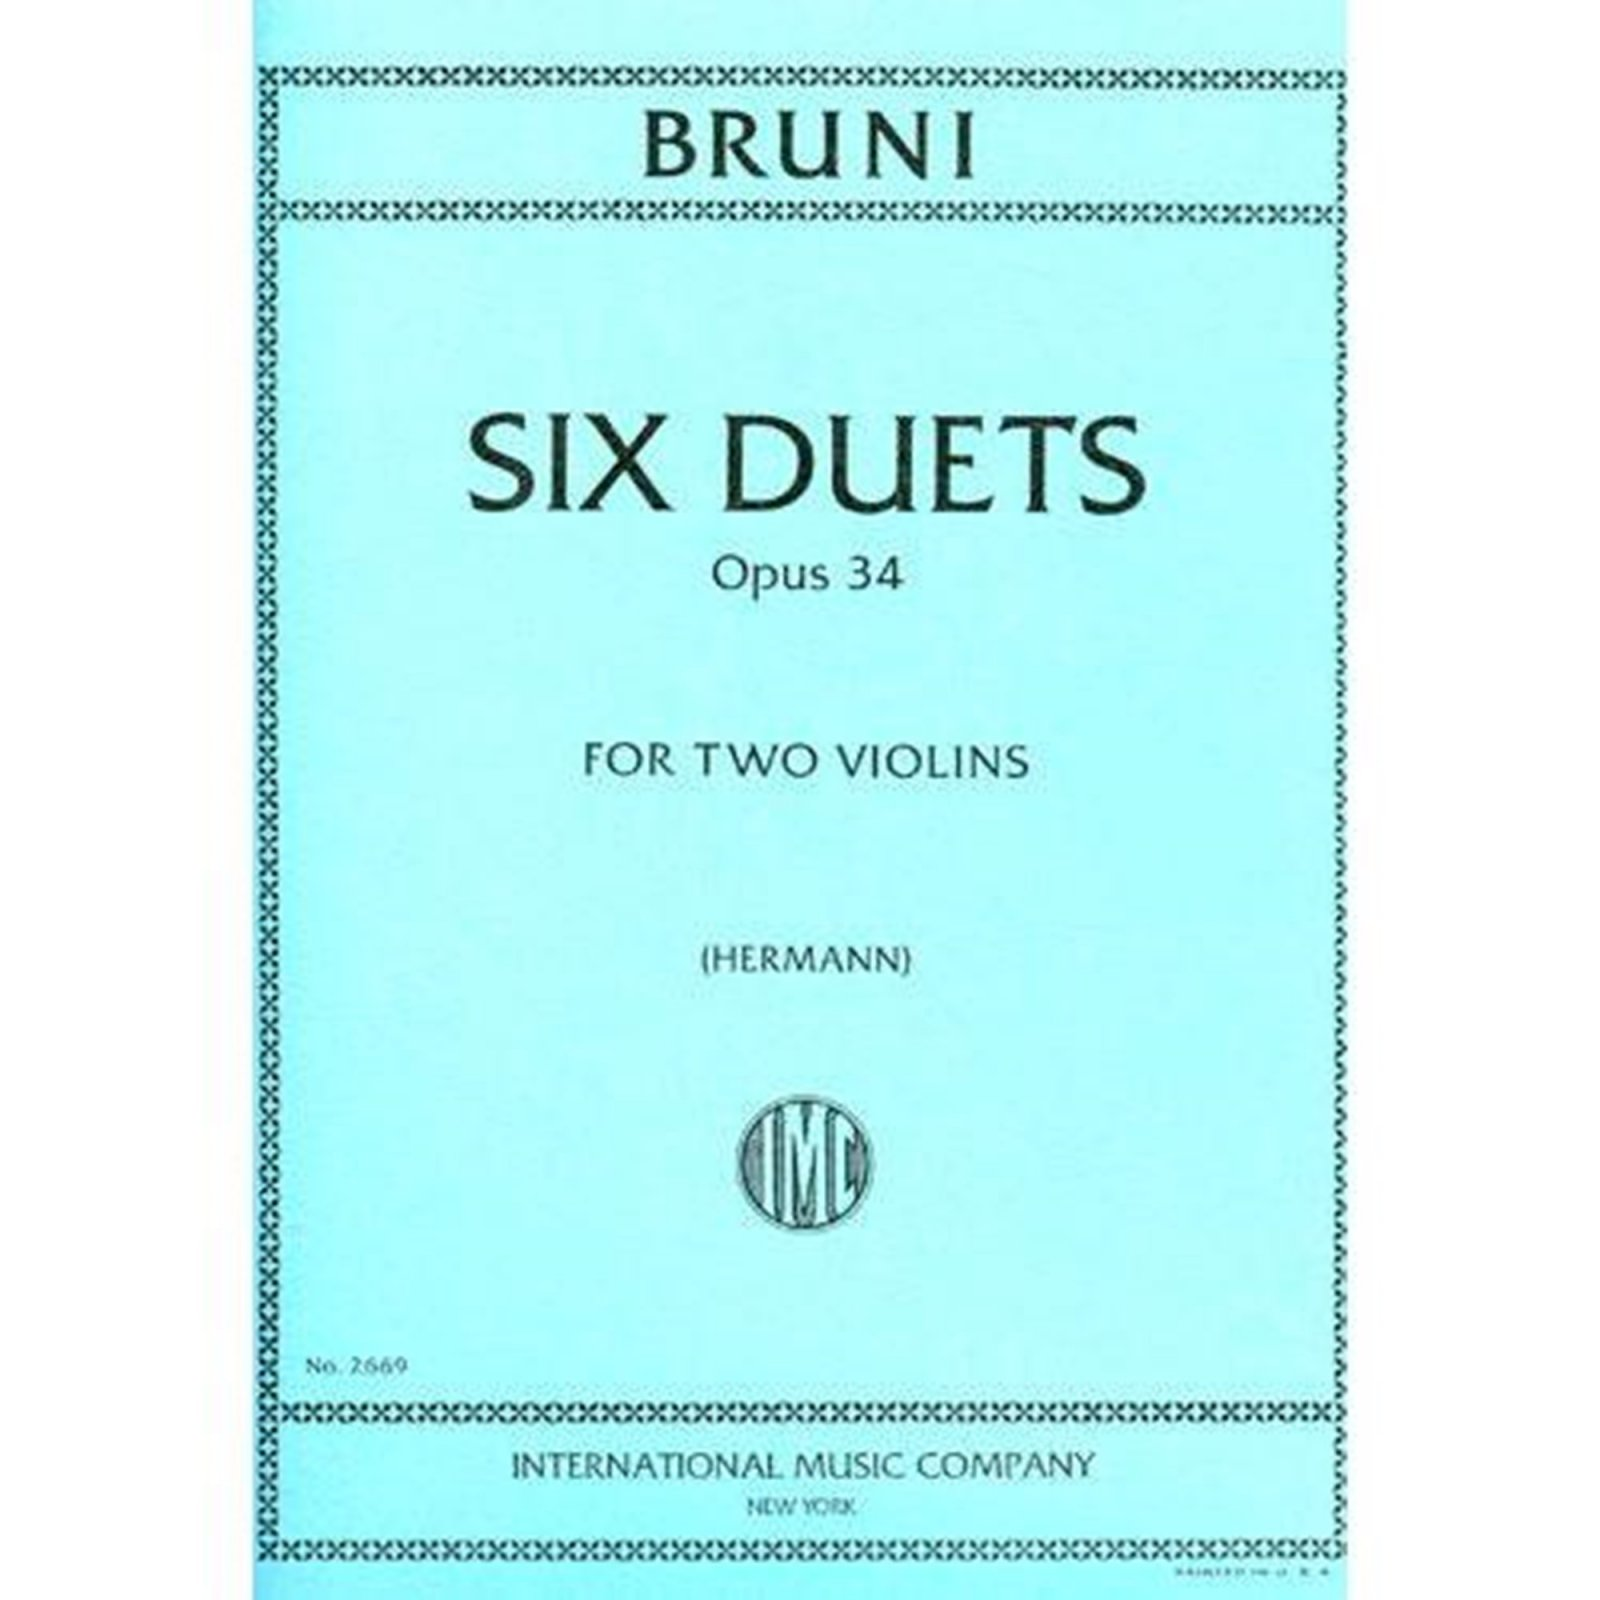 Bruni: Six Easy Duets Op. 34 Ed. Hermann